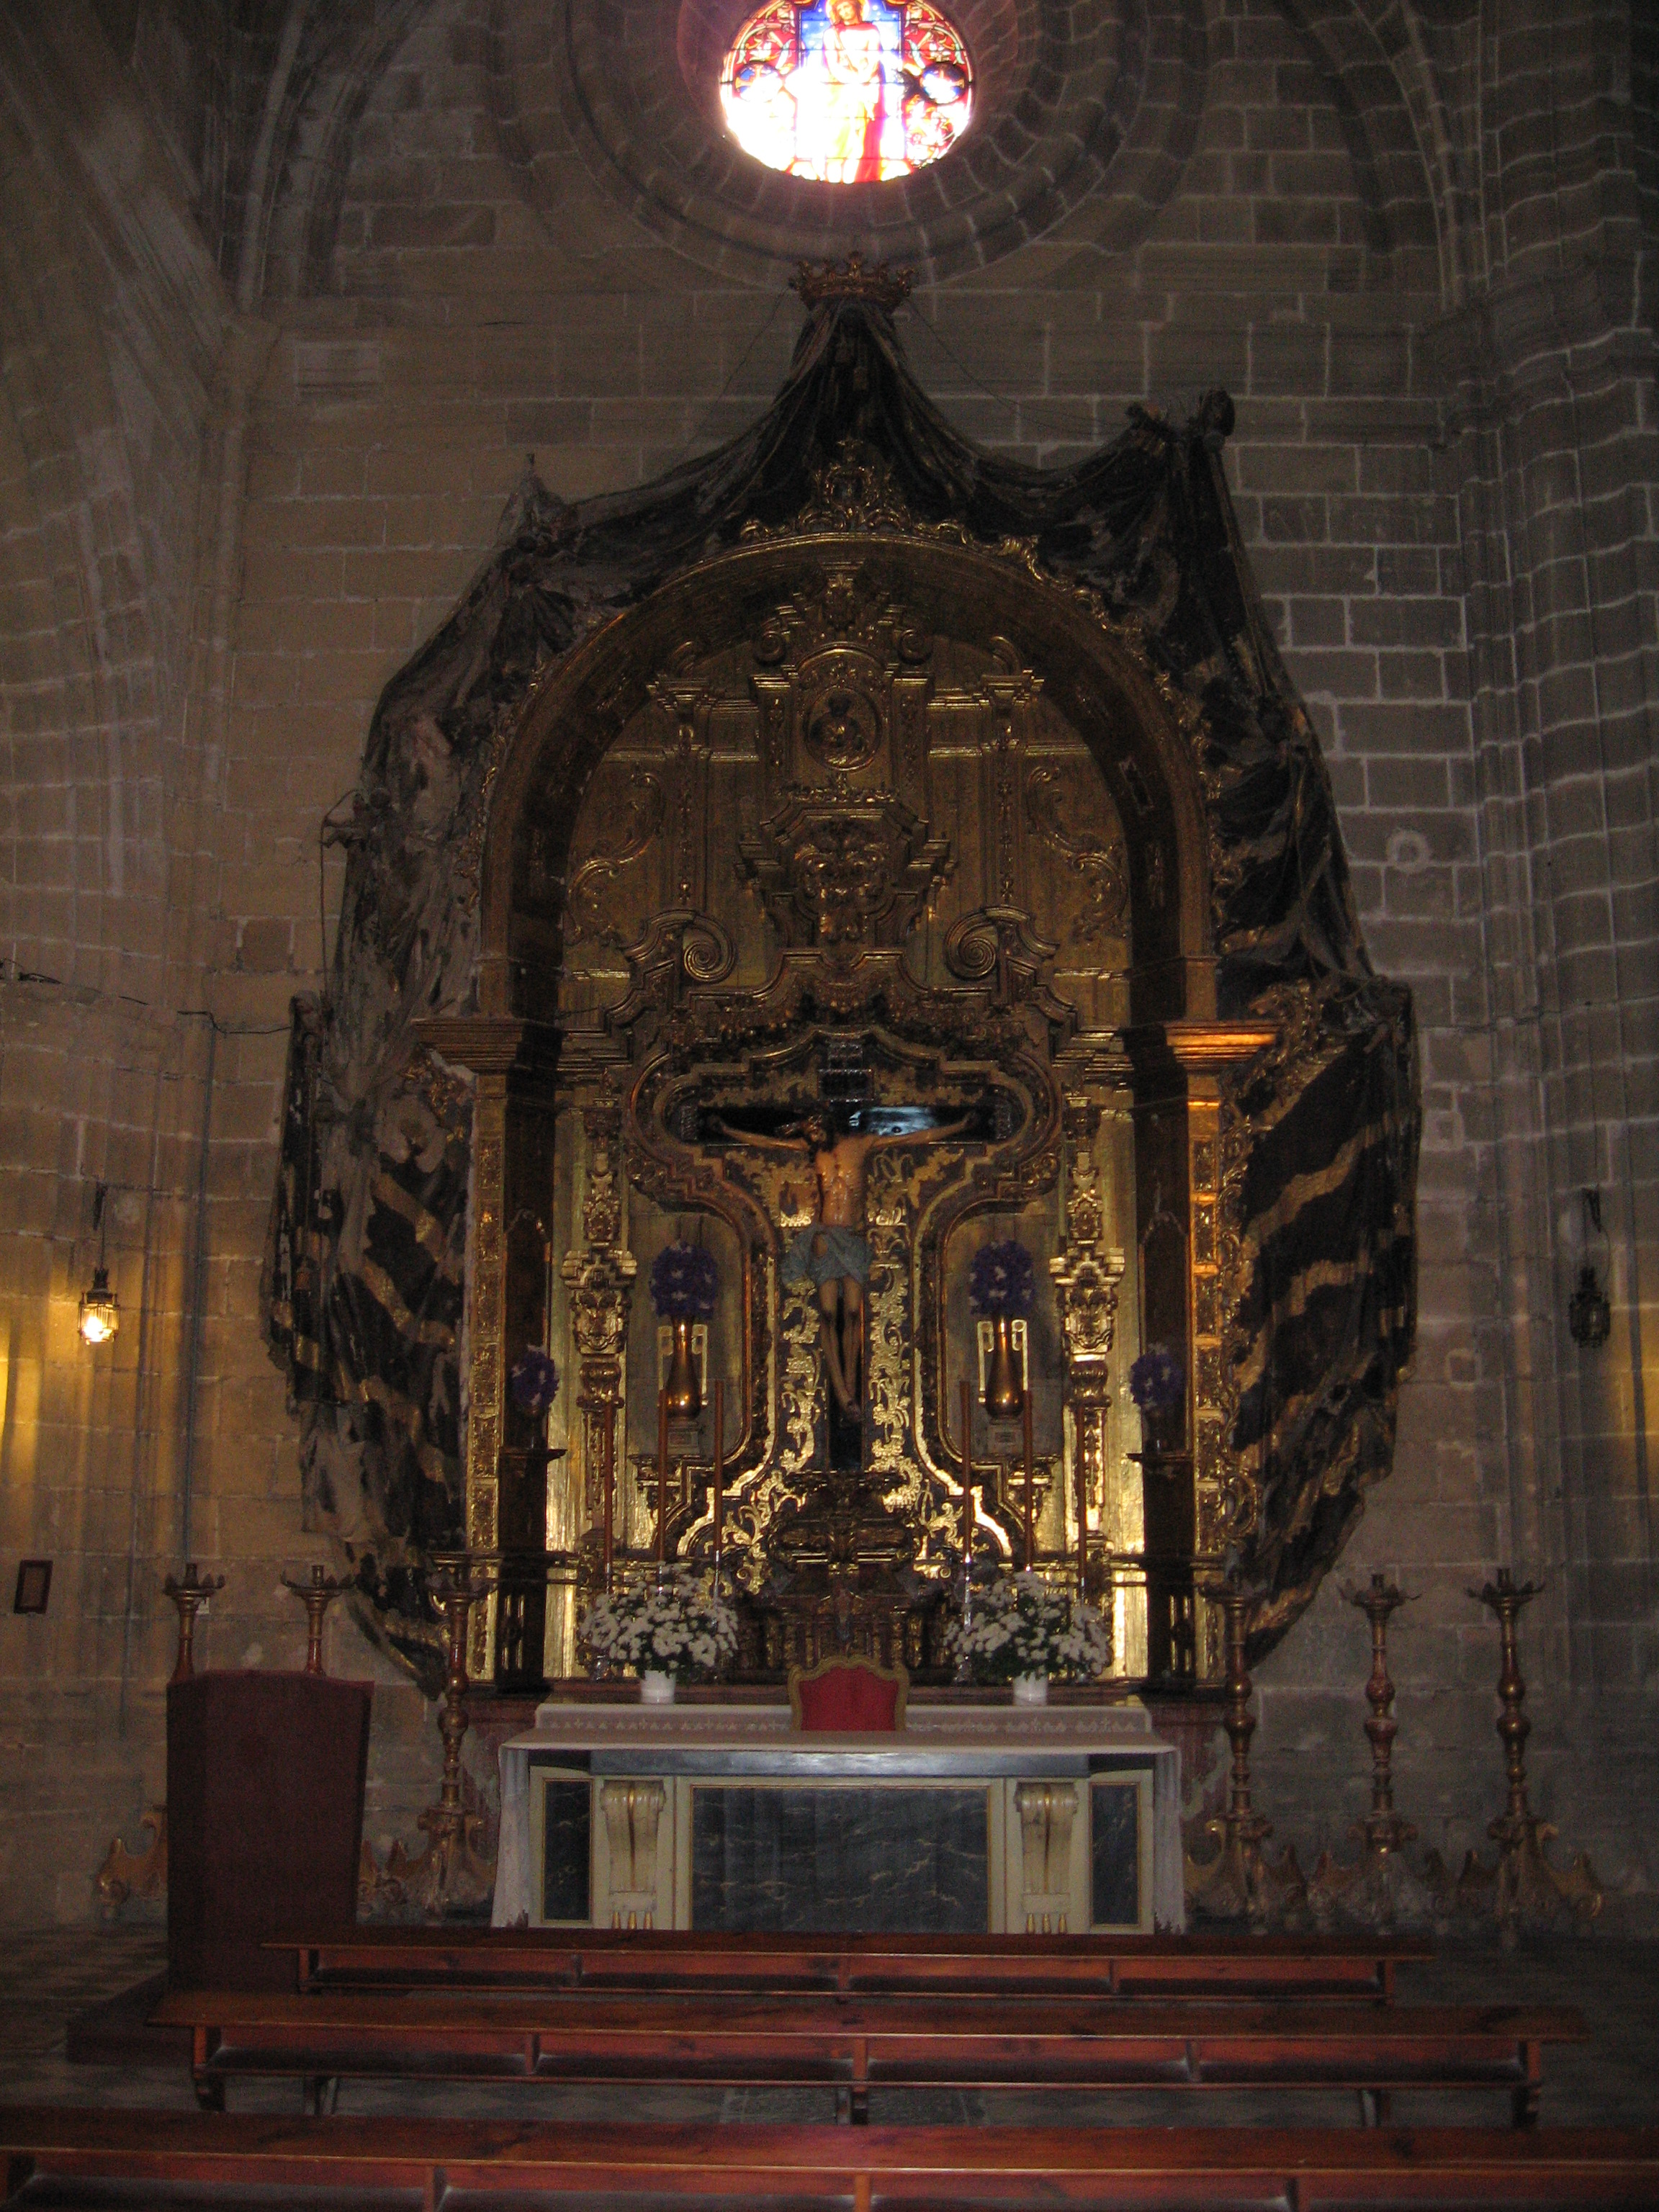 http://upload.wikimedia.org/wikipedia/commons/0/09/CristoVigaCatedralJerez.jpg